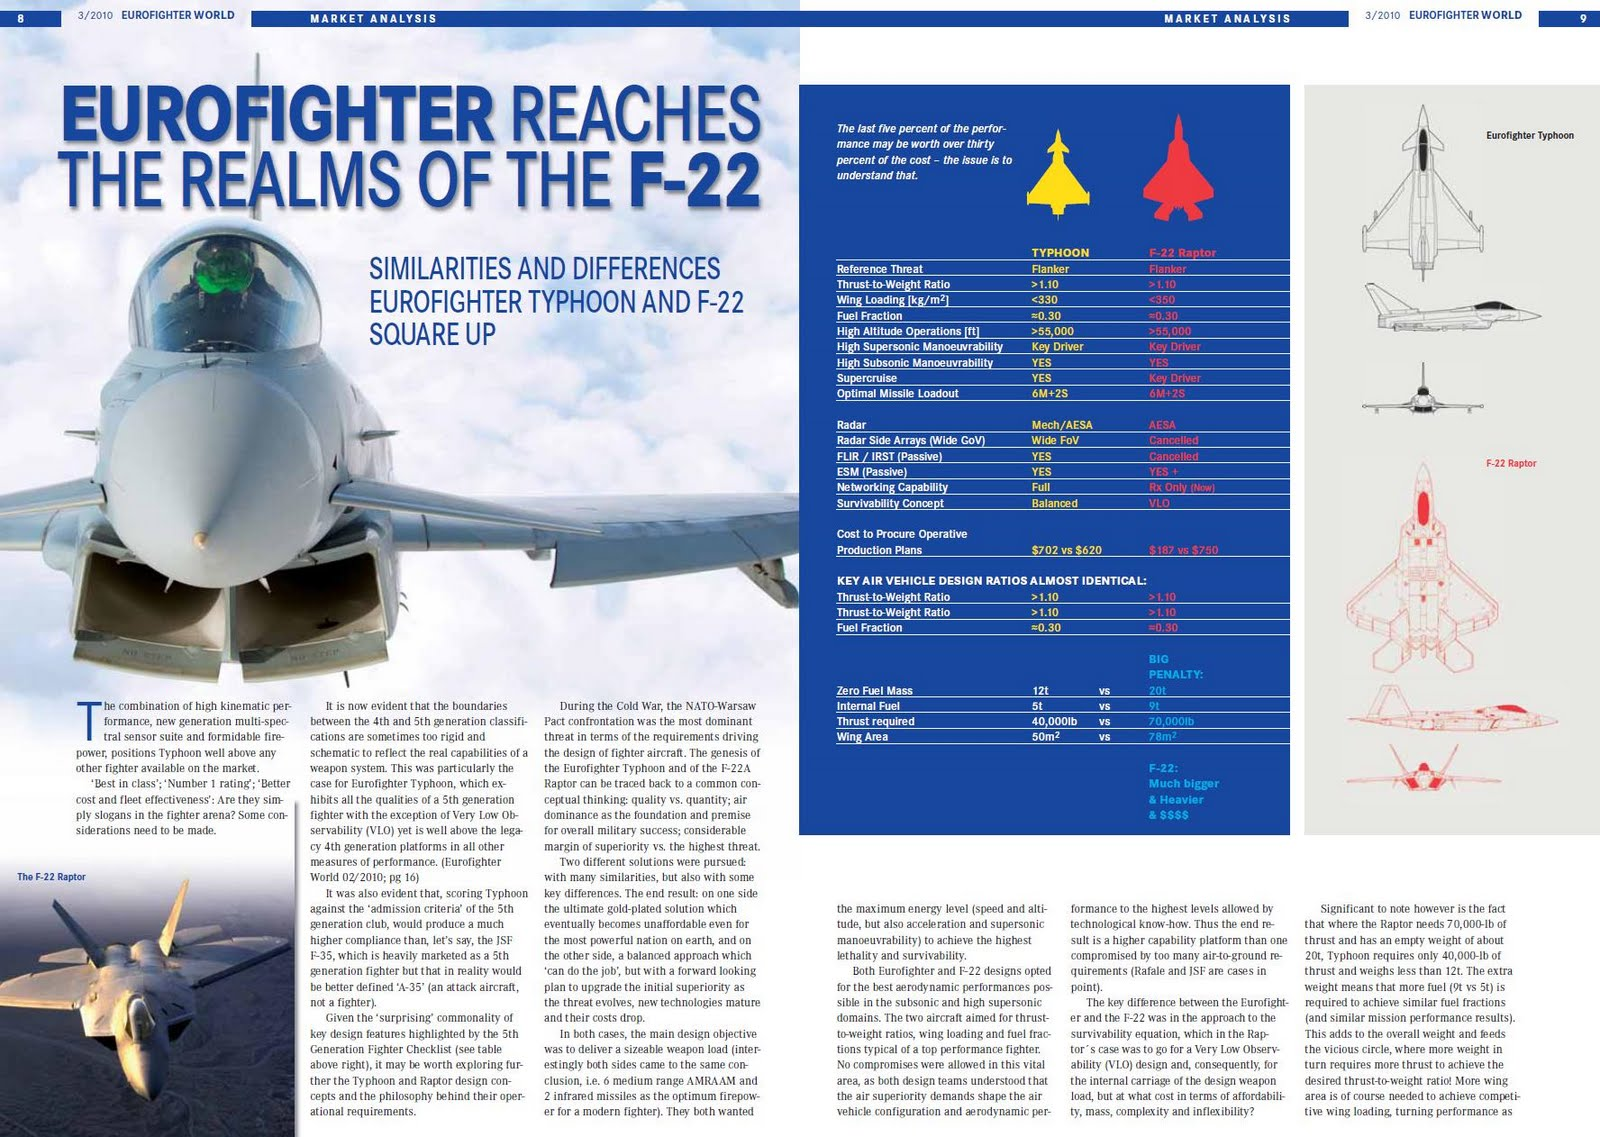 Eurofighter Reaches The Realms Of F-22 Says Eurofighter World